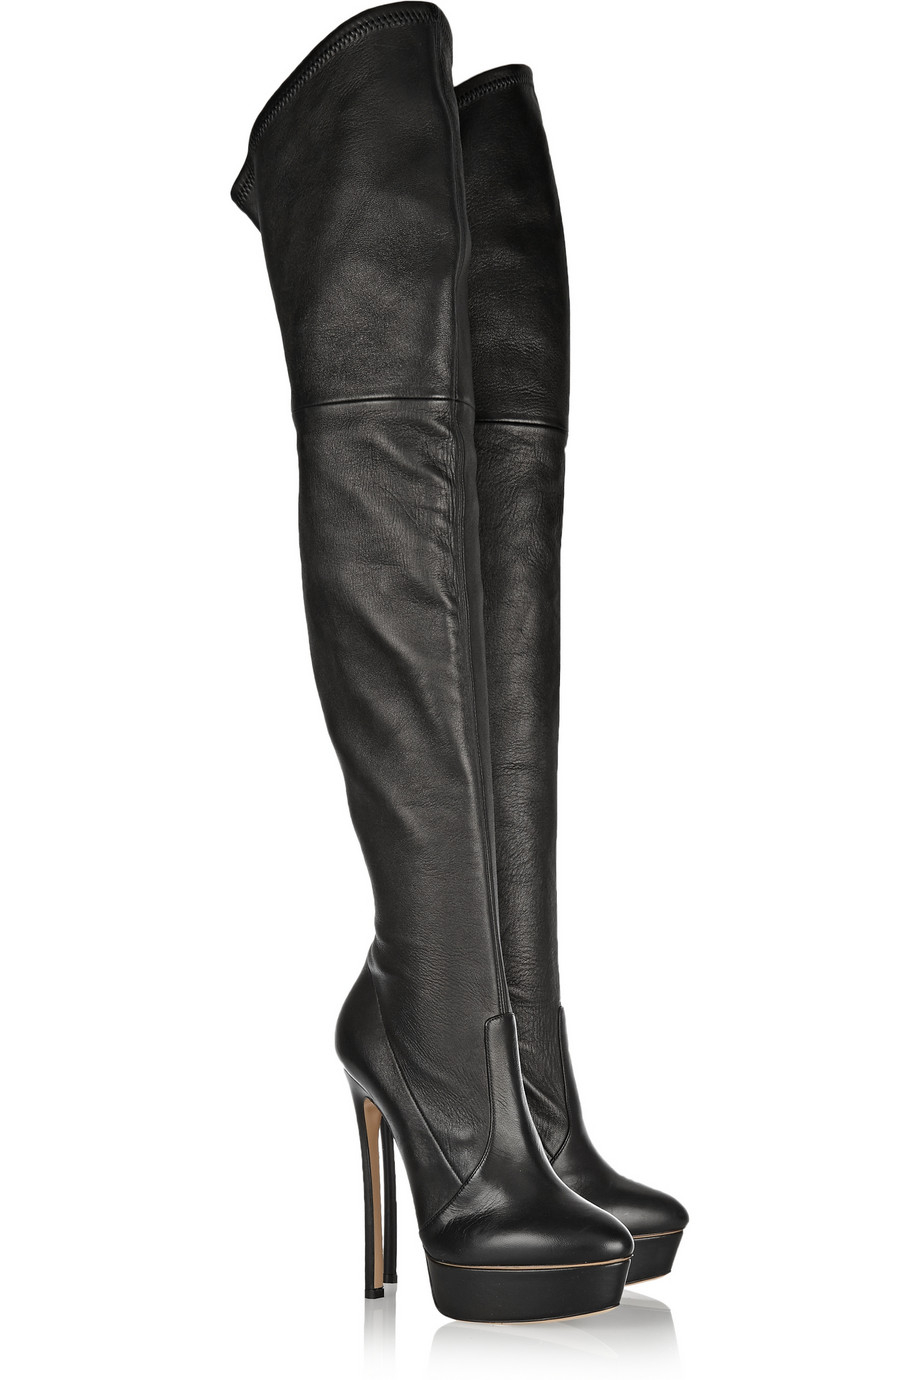 9066d6dc1c4 Lyst - Casadei Stretch-Leather Over-The-Knee Boots in Black